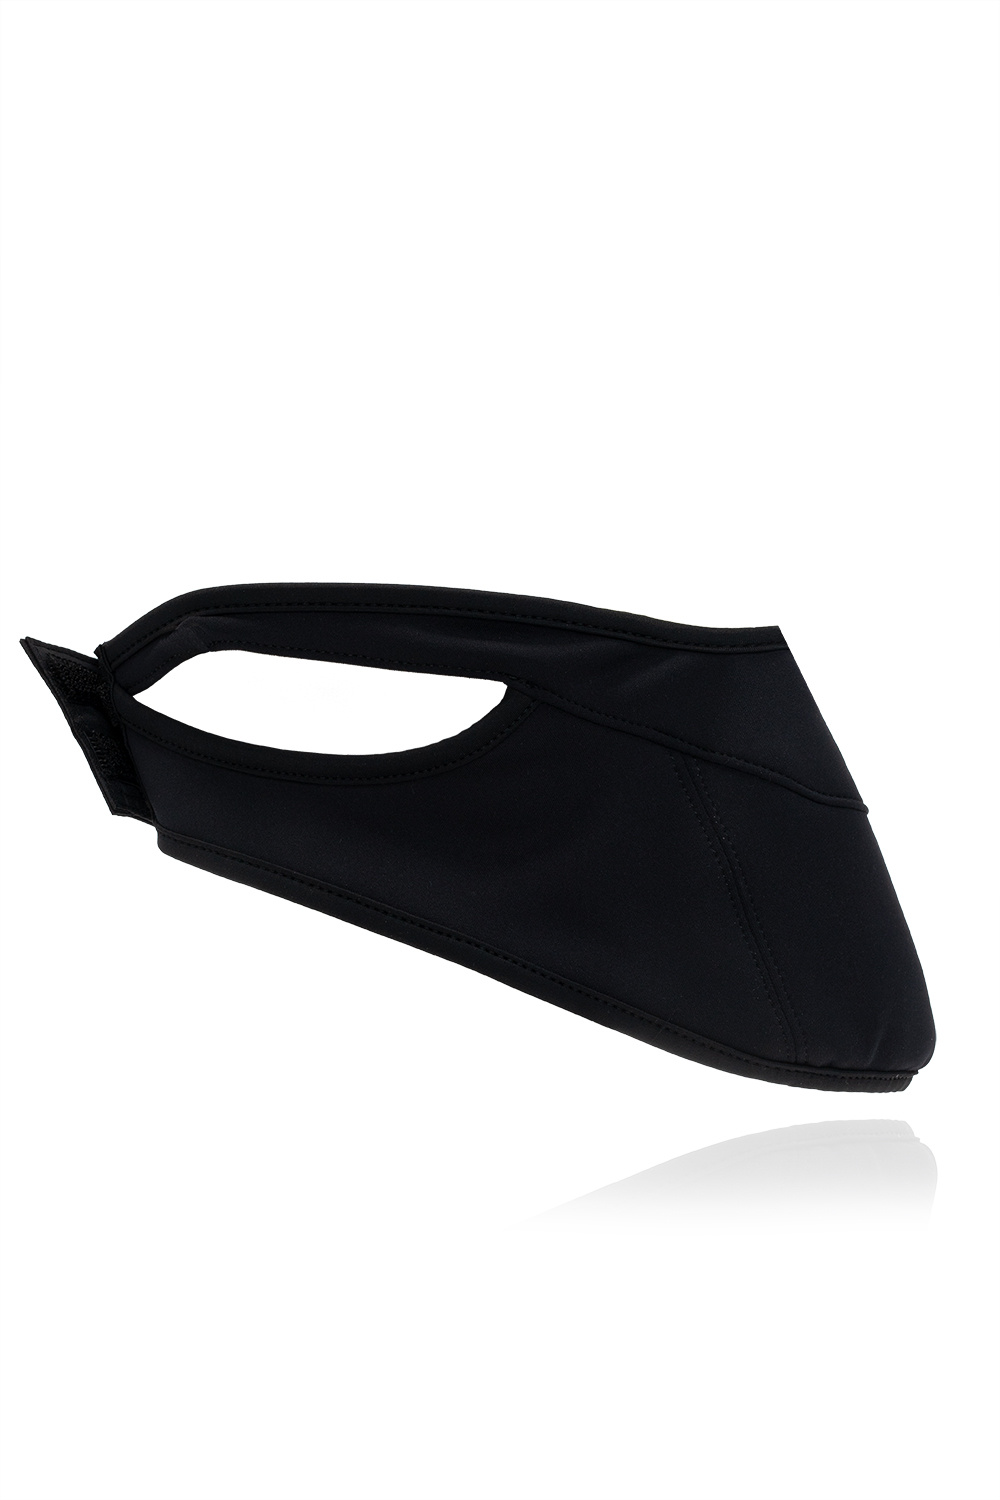 White Mountaineering Mask with logo